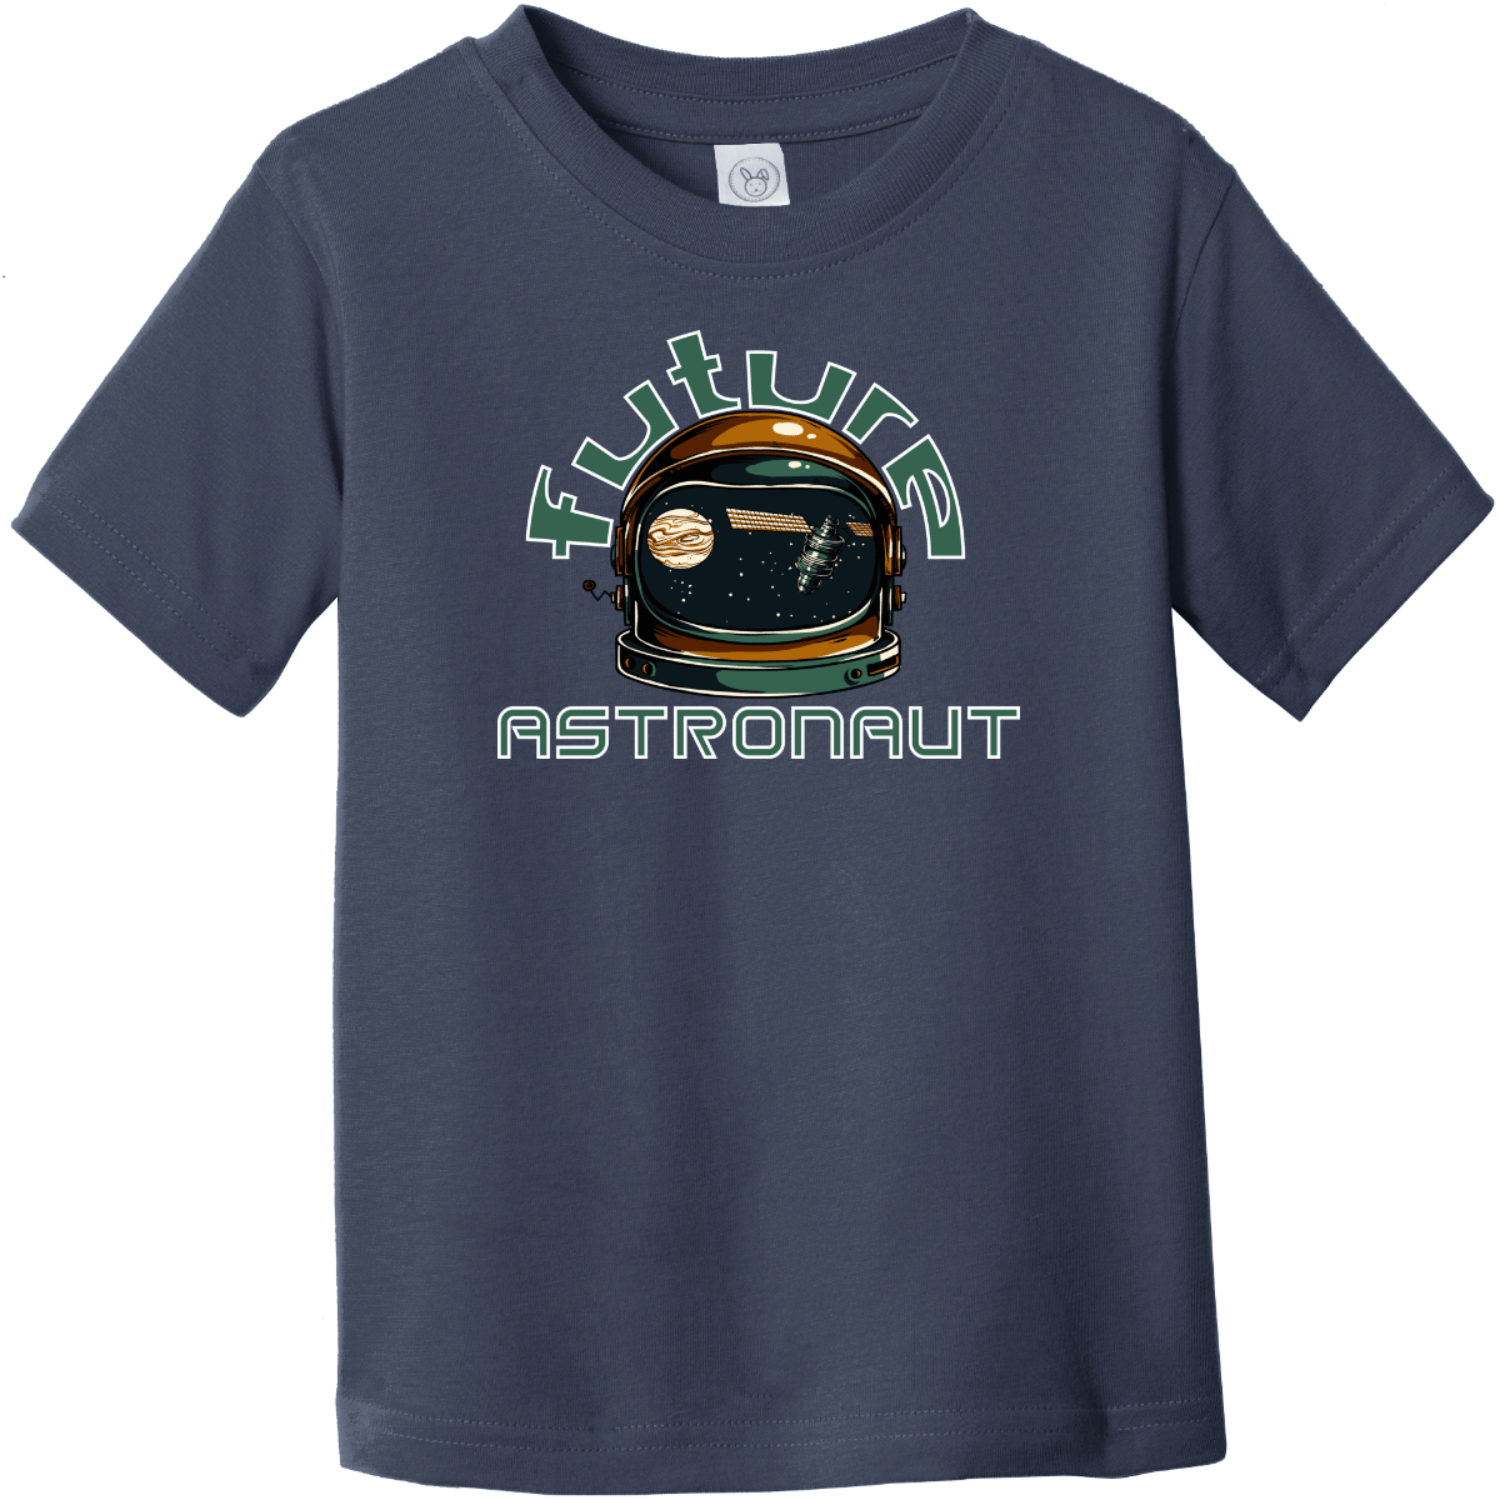 Future Astronaut Toddler T-Shirt Navy Rabbit Skins Toddler Fine Jersey Tee RS3321